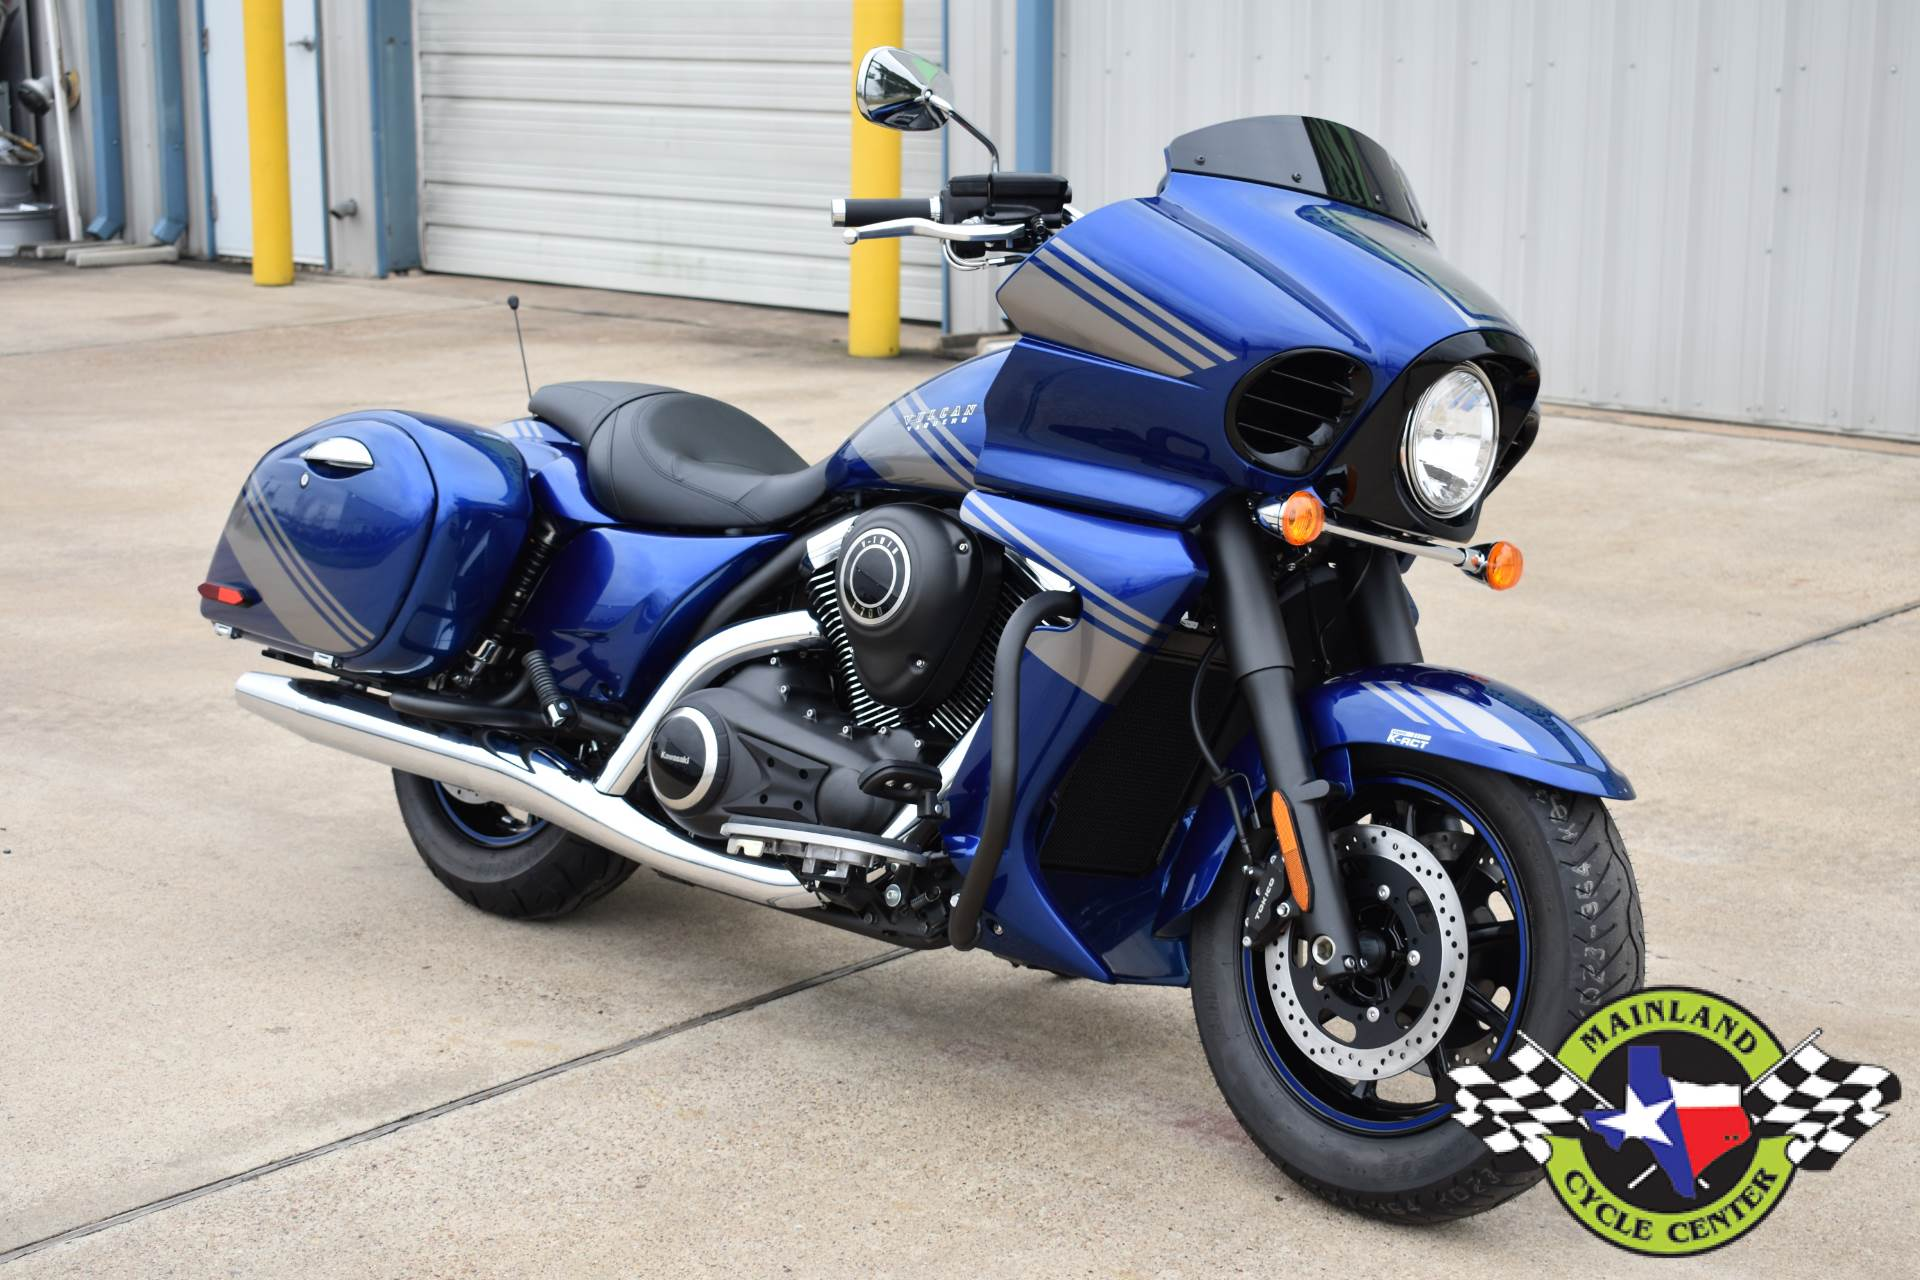 2020 Kawasaki Vulcan 1700 Vaquero ABS in La Marque, Texas - Photo 2